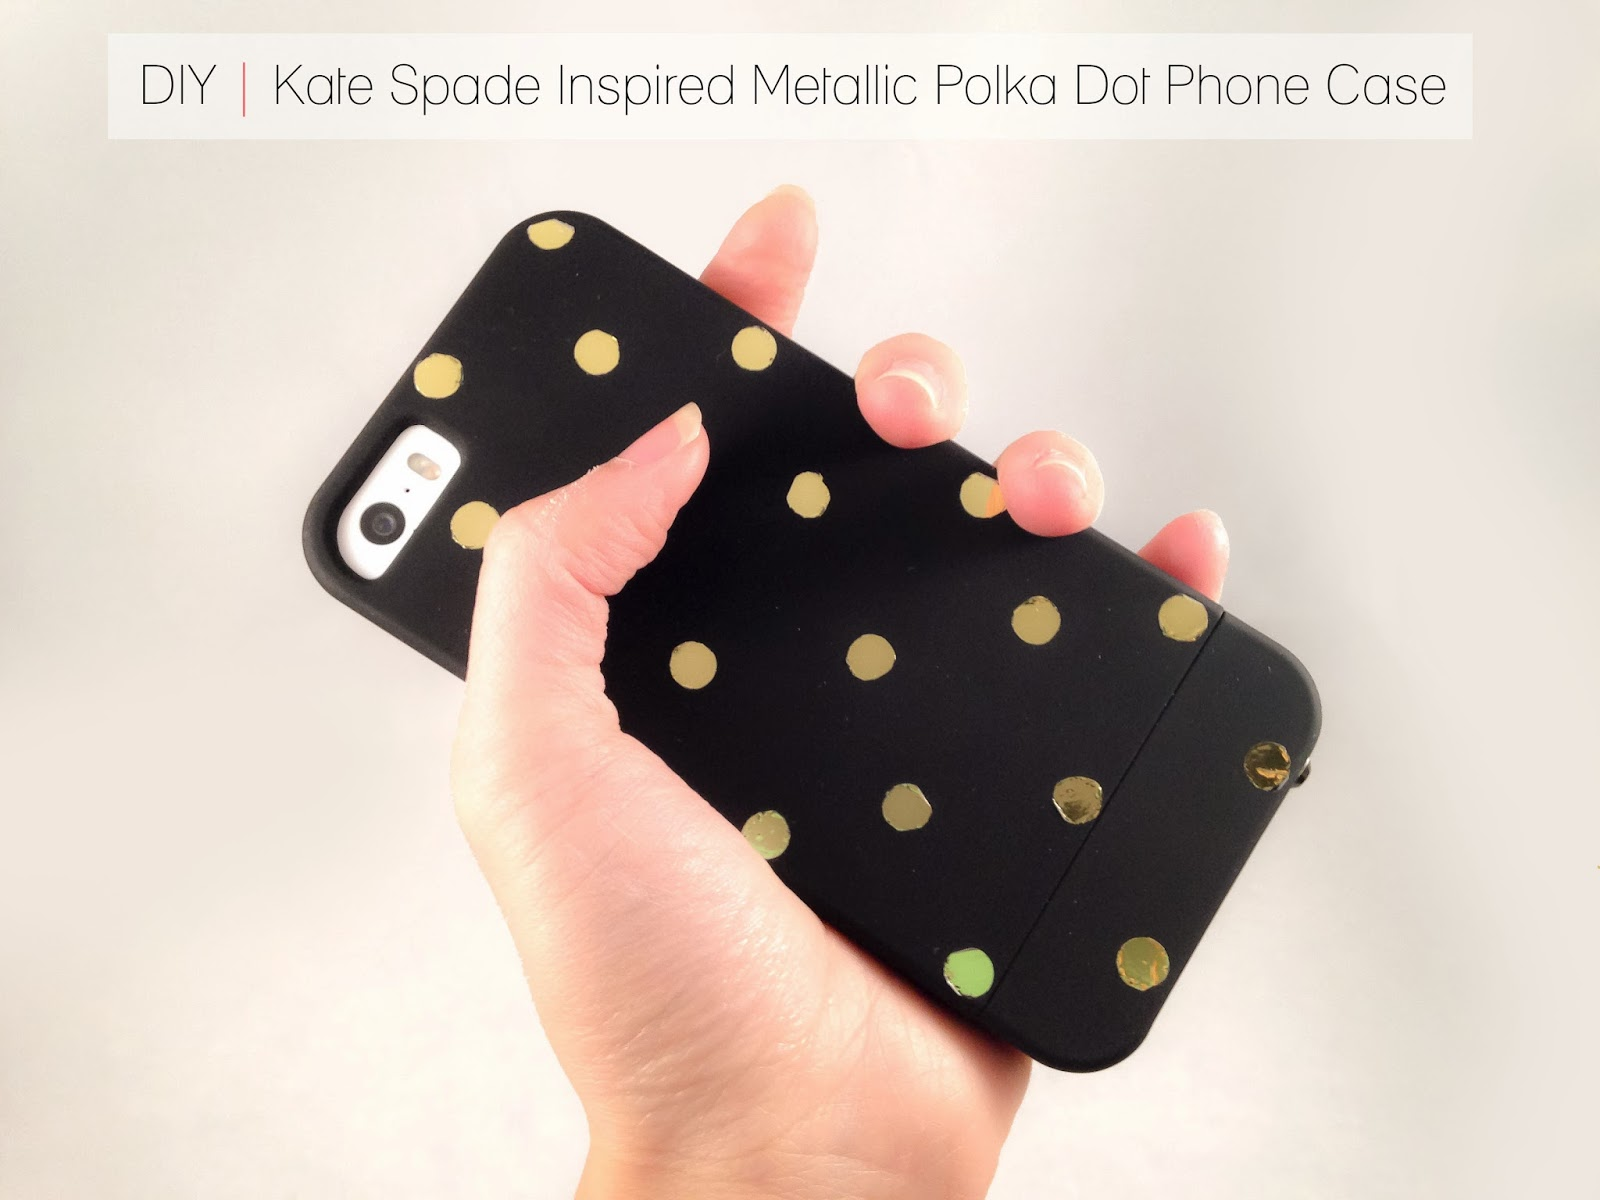 50 Crafts To Make and Sell - Easy DIY Ideas for Cheap Things To Sell on Etsy, Online and for Craft Fairs. Make Money with These Homemade Crafts for Teens, Kids, Christmas, Summer, Mother's Day Gifts. | DIY Kate Spade Inspired Metallic Polka Dot Phone Case #crafts #diy